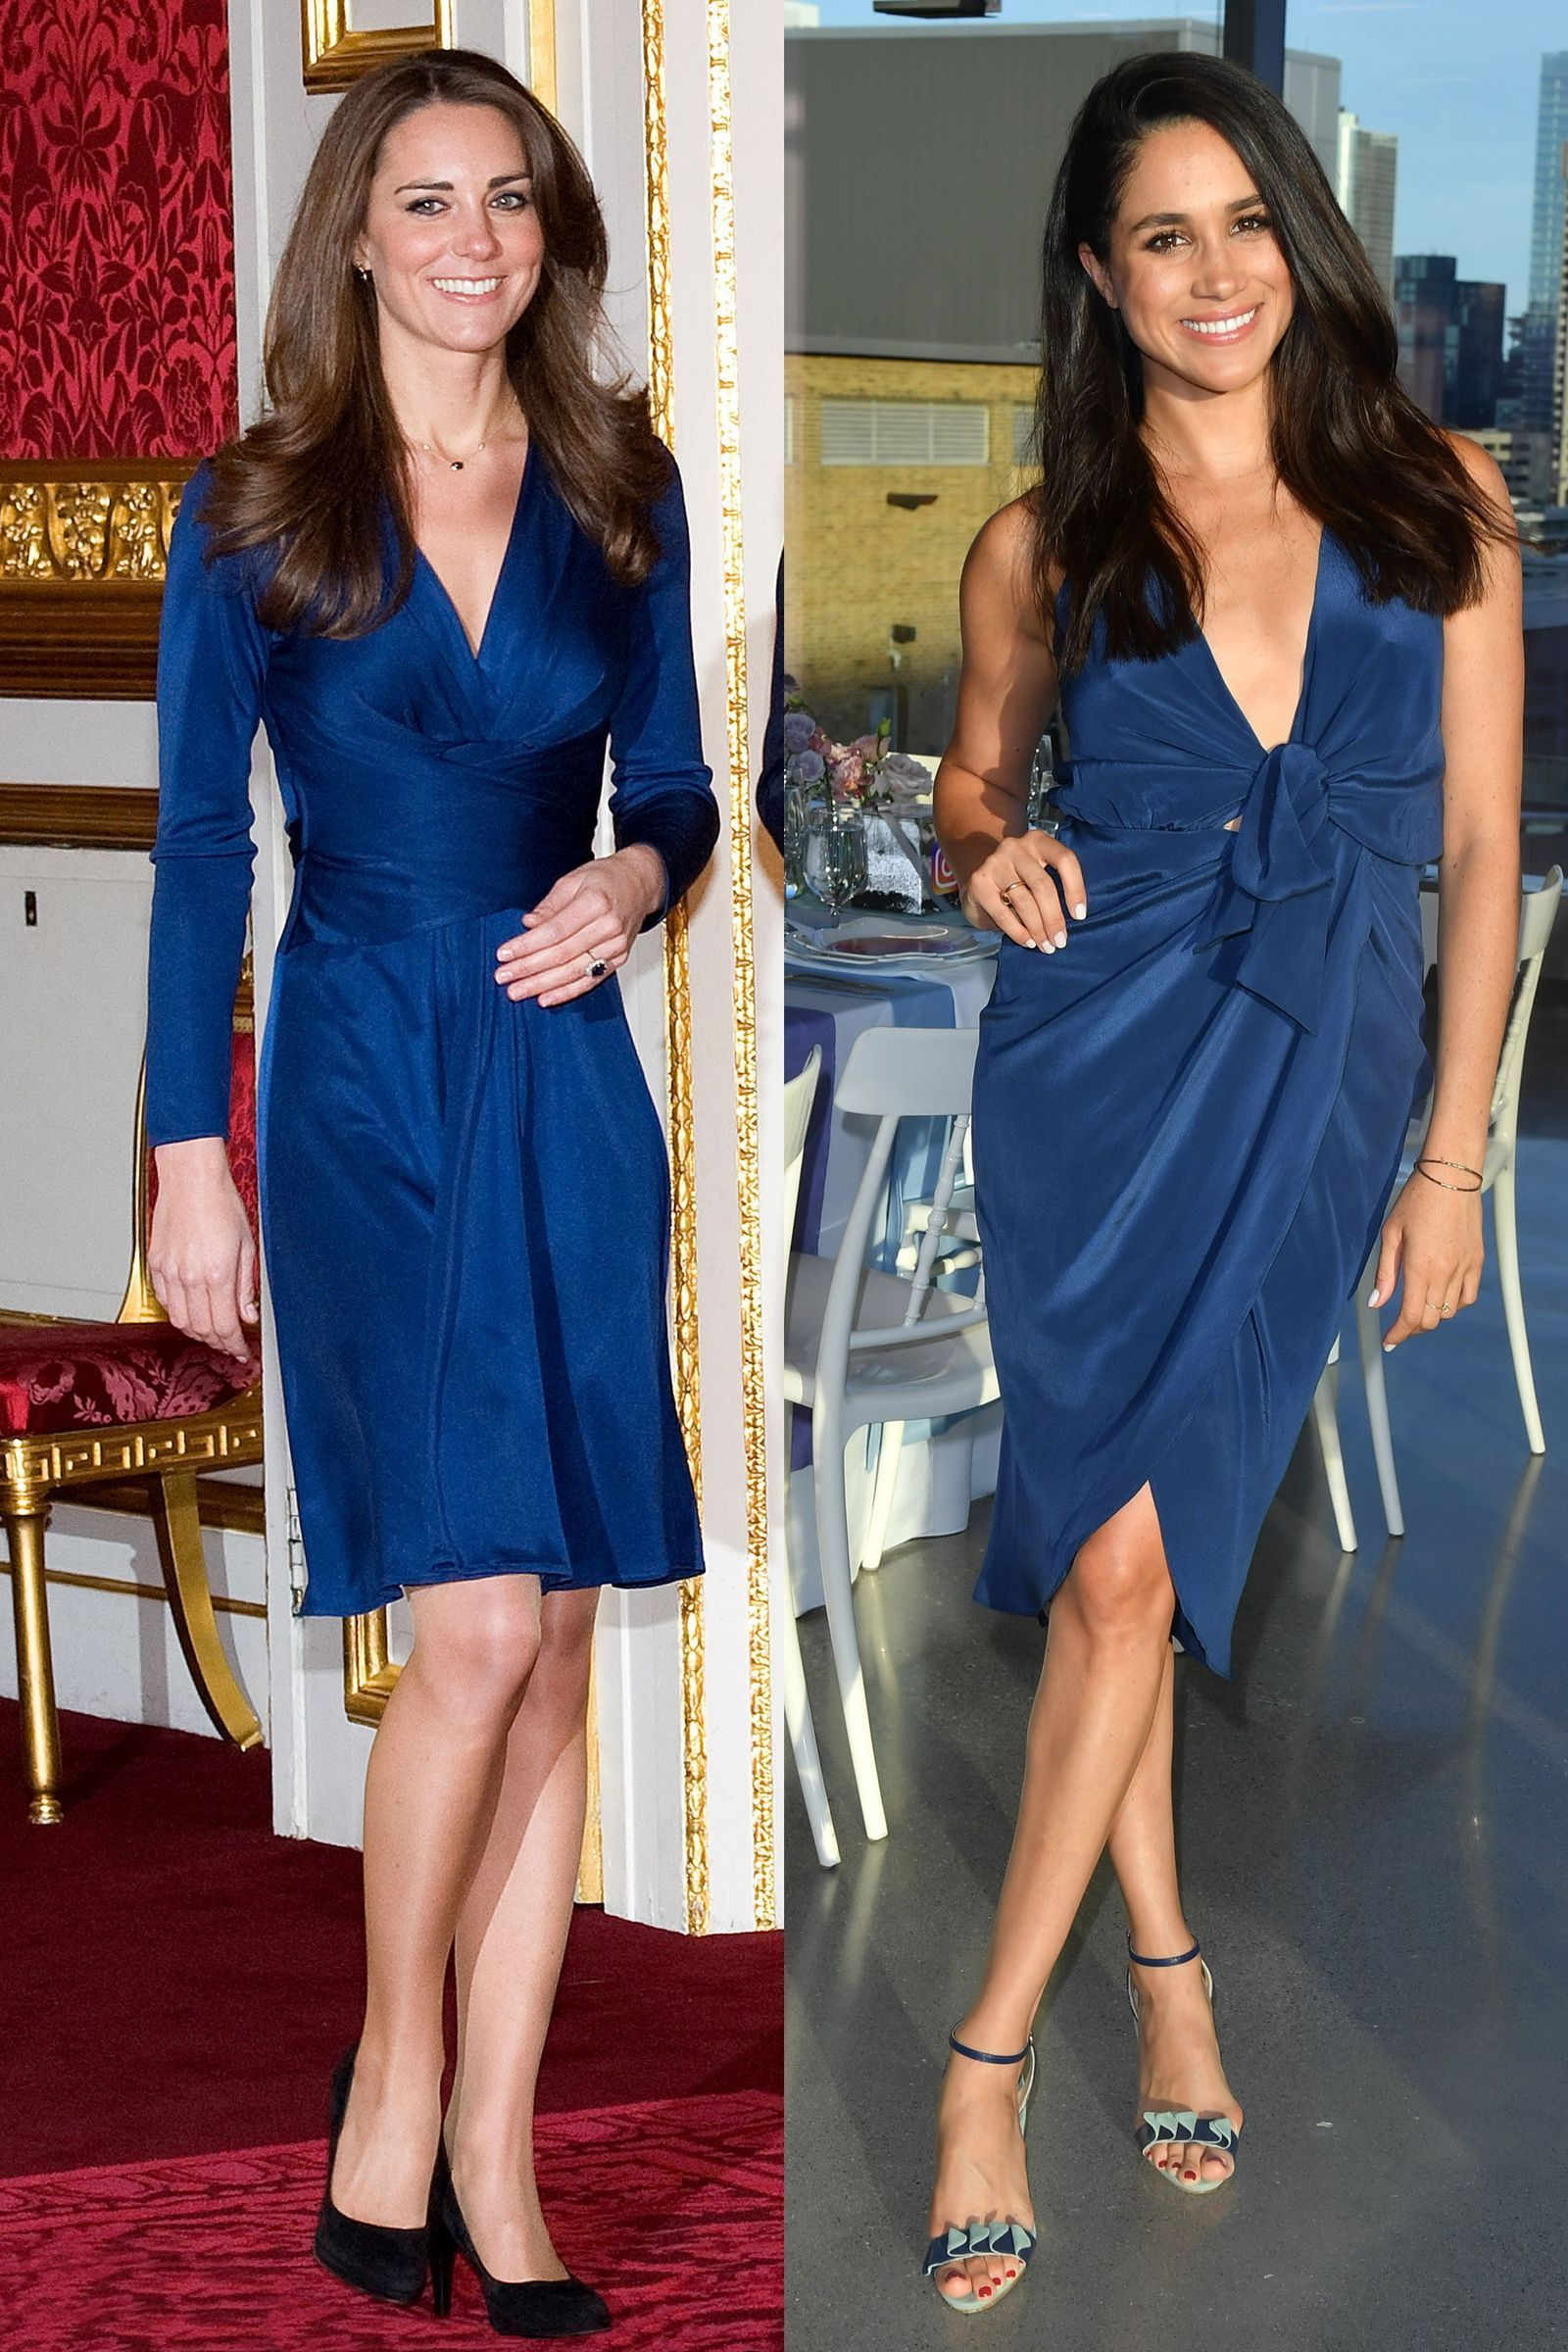 c16da7fe033f 21 Times Kate Middleton and Meghan Markle Dressed Exactly the Same ...